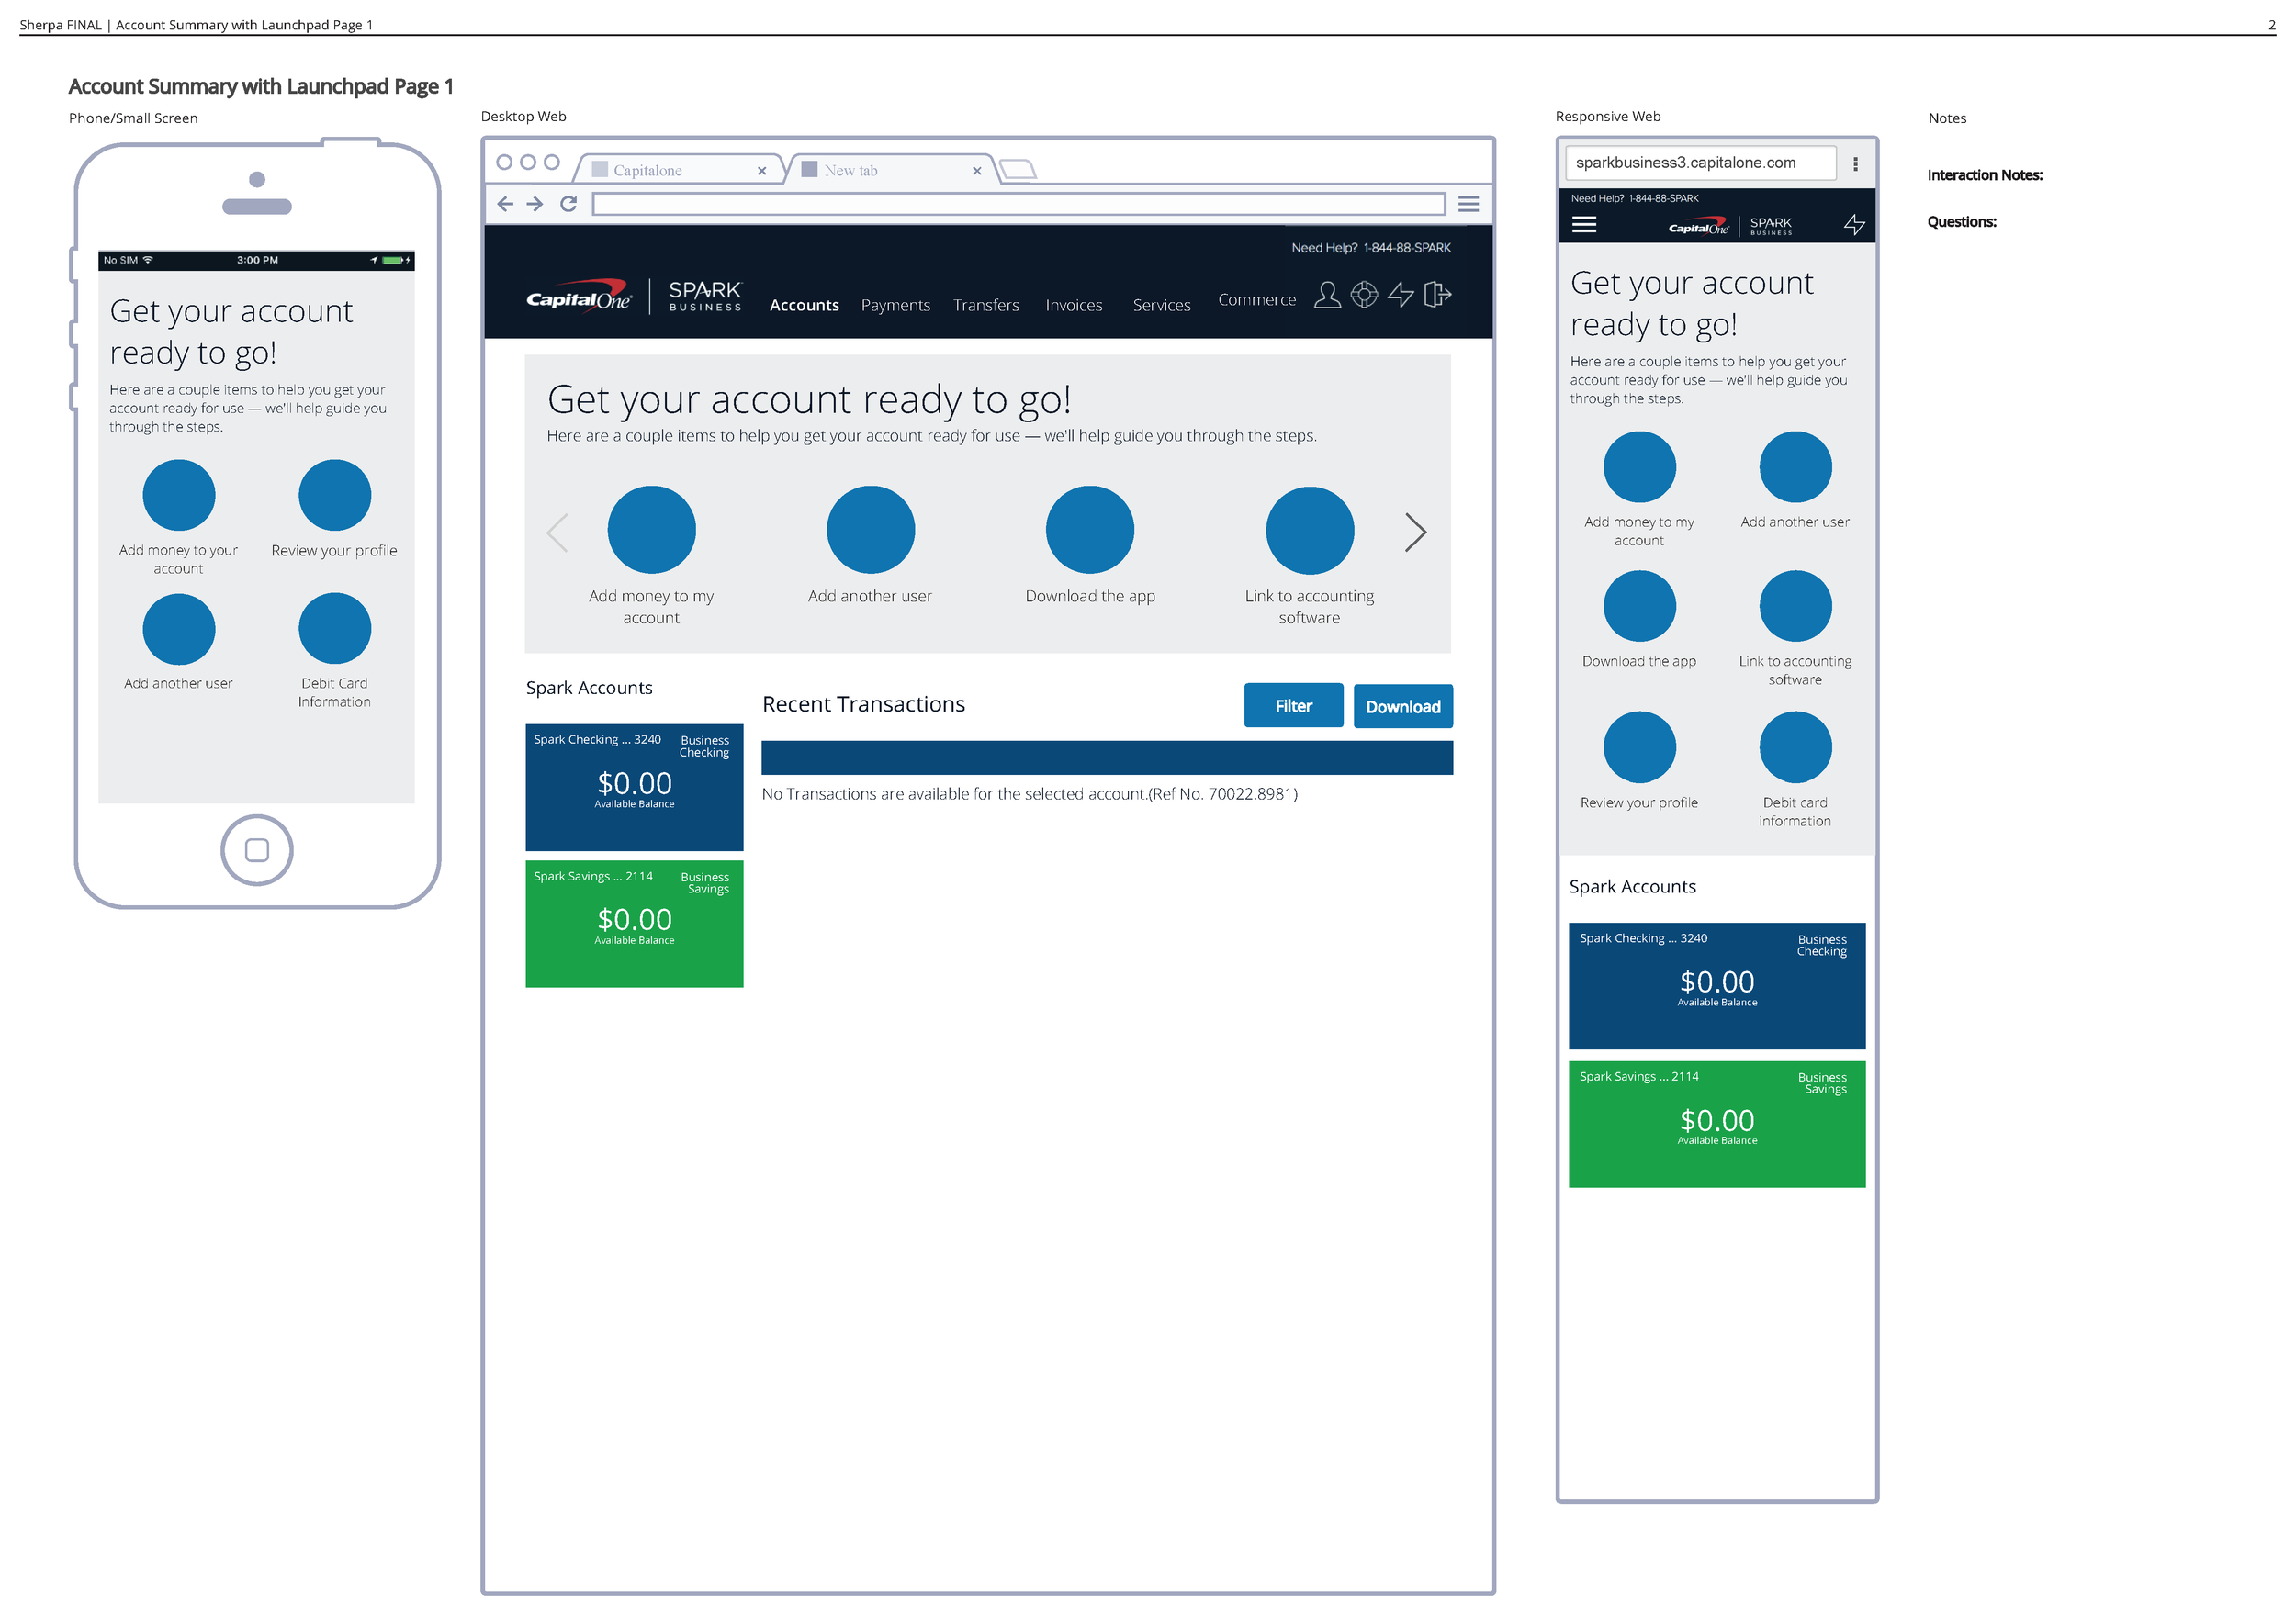 """The onboarding """"space"""" is the grey box in under the header on each device. It was important that the onboarding space could be within the application but as a standalone widget. This project specifically focused on creating this space on the homepage and linking to key tasks, but it depended on existing task flows owned by other teams"""